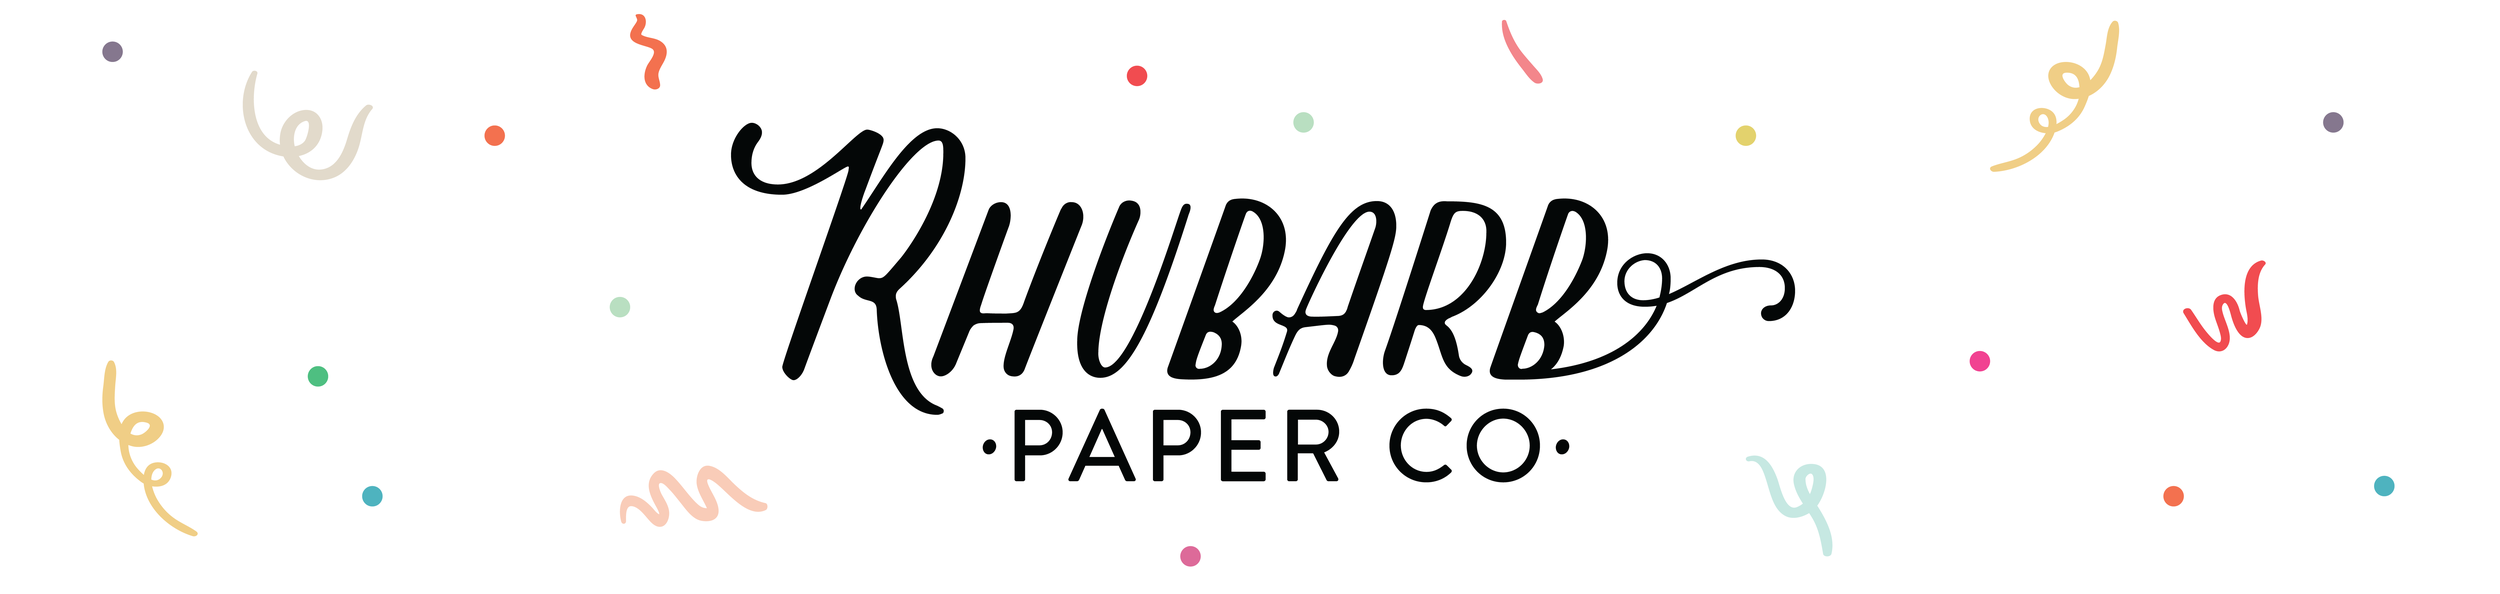 Rhubarb Paper Co.